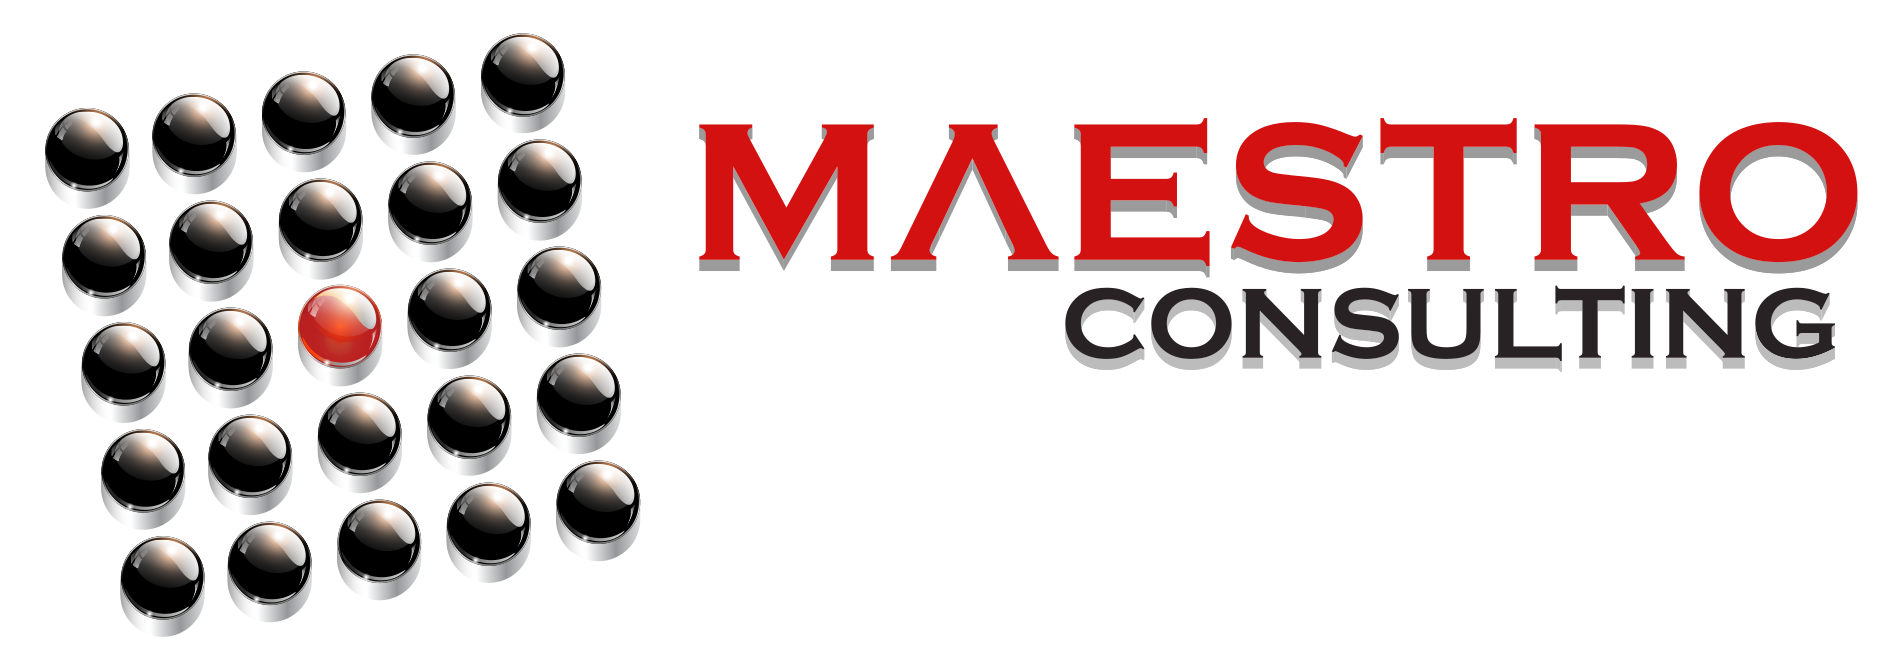 Maestro Consulting: South Africa